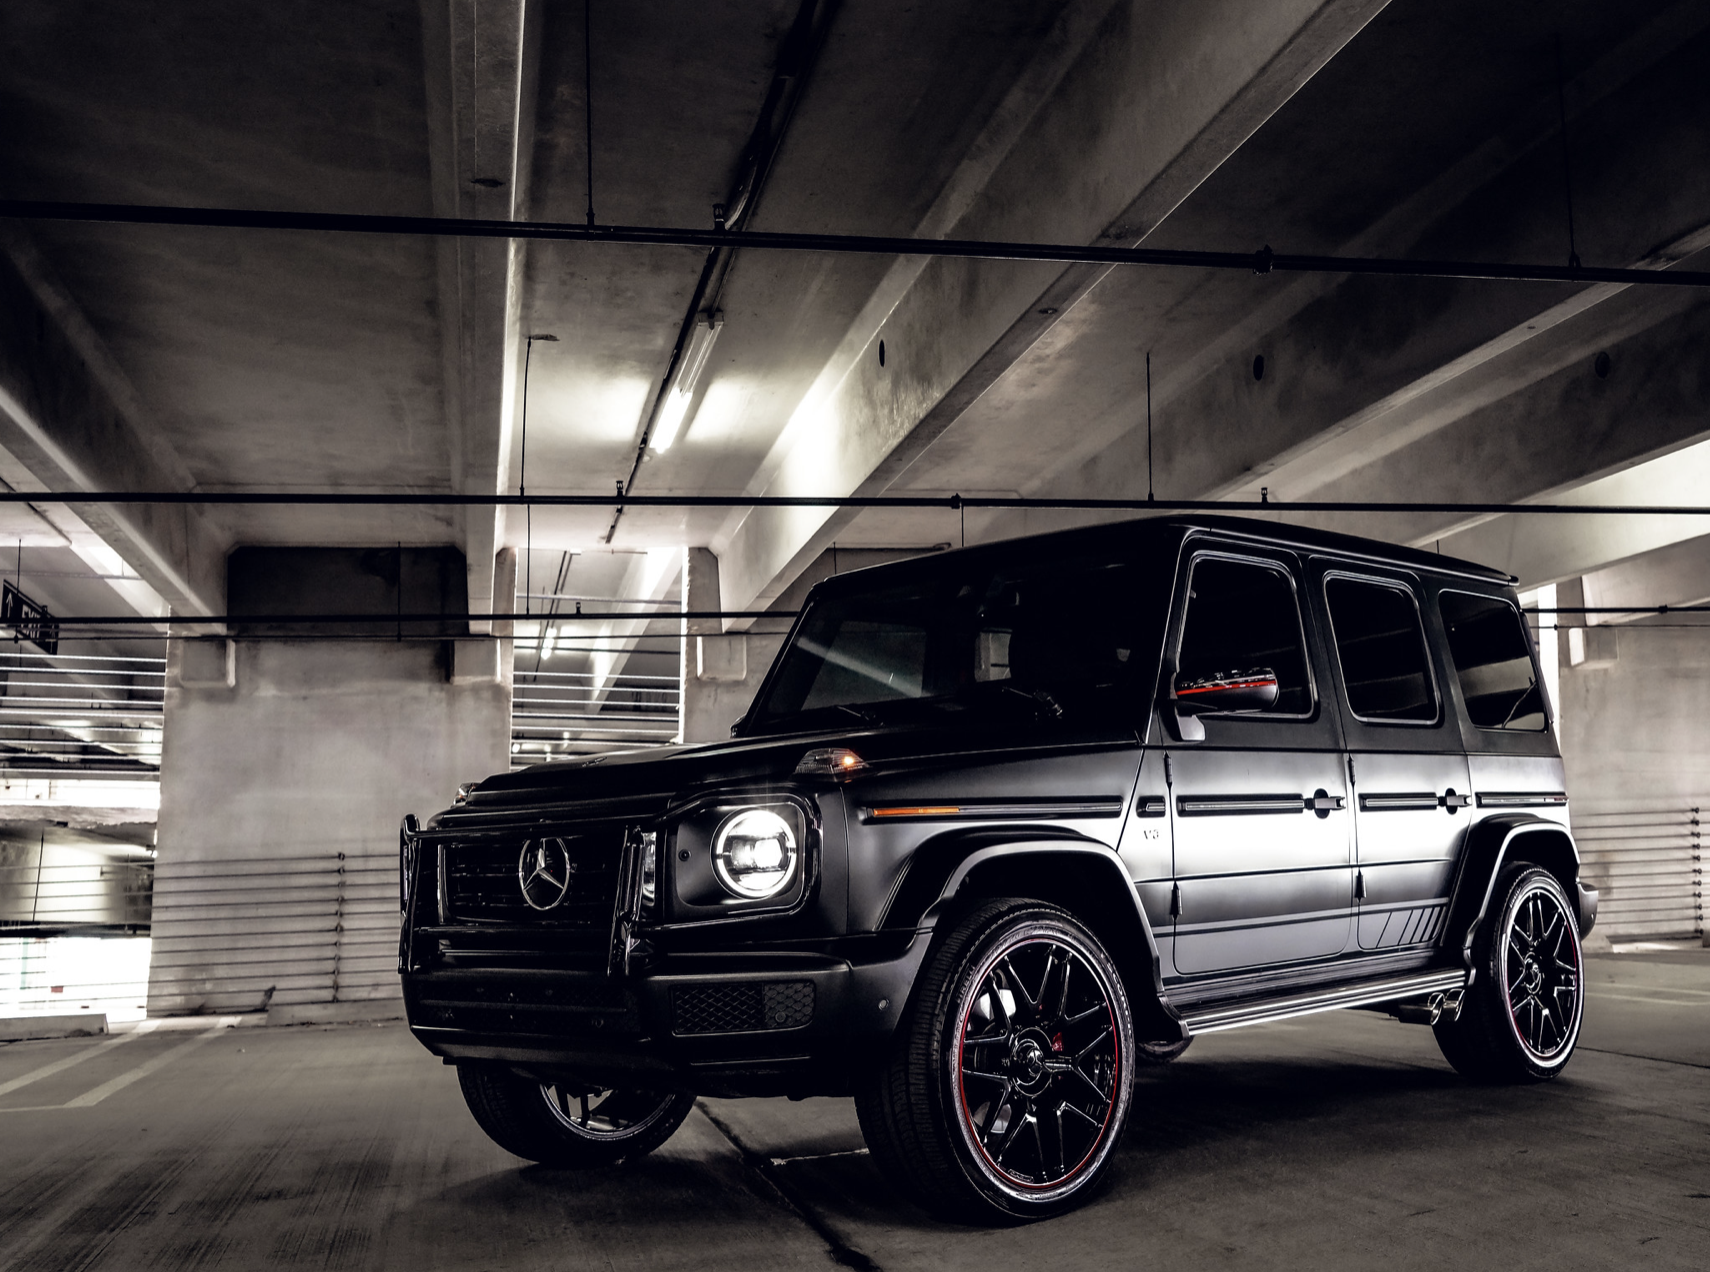 Image #4 of our  Mercedes AMG G63 Matt Black    In Miami Fort Lauderdale Palm Beach South Florida